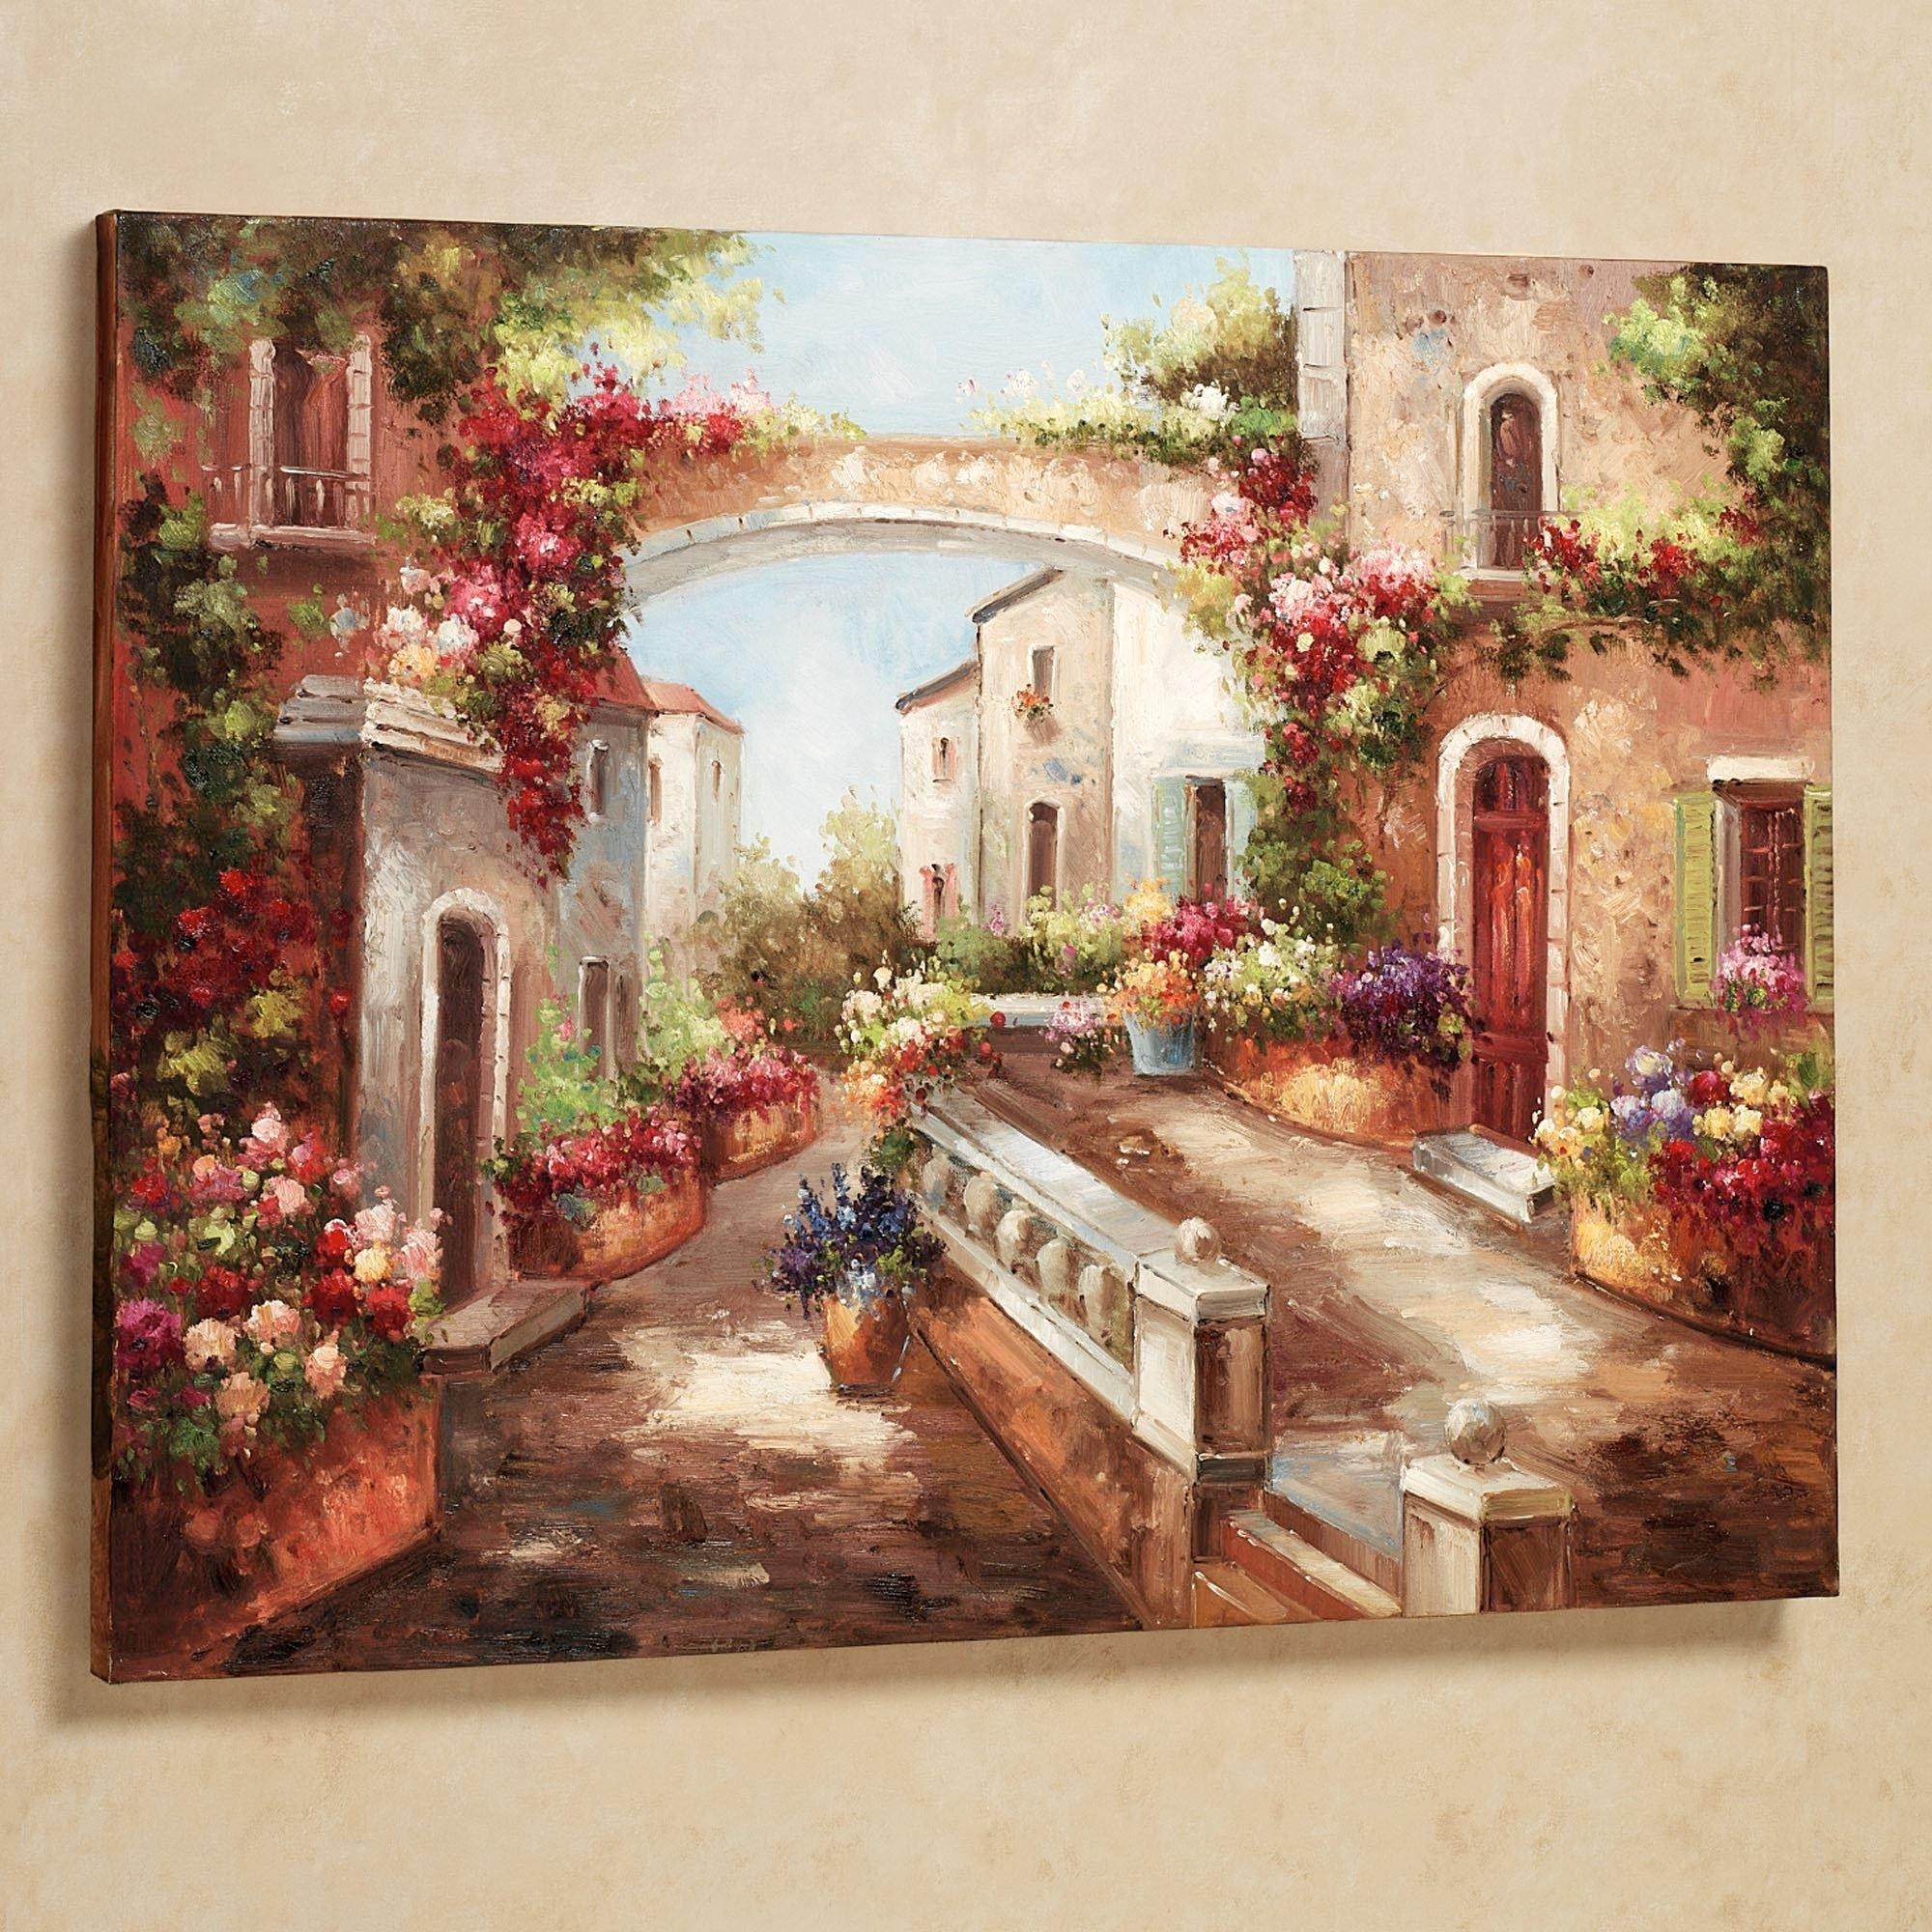 Italian Wall Art Designing Home Inspiration Lovely – Lovely Home Throughout Italian Villa Wall Art (View 5 of 20)